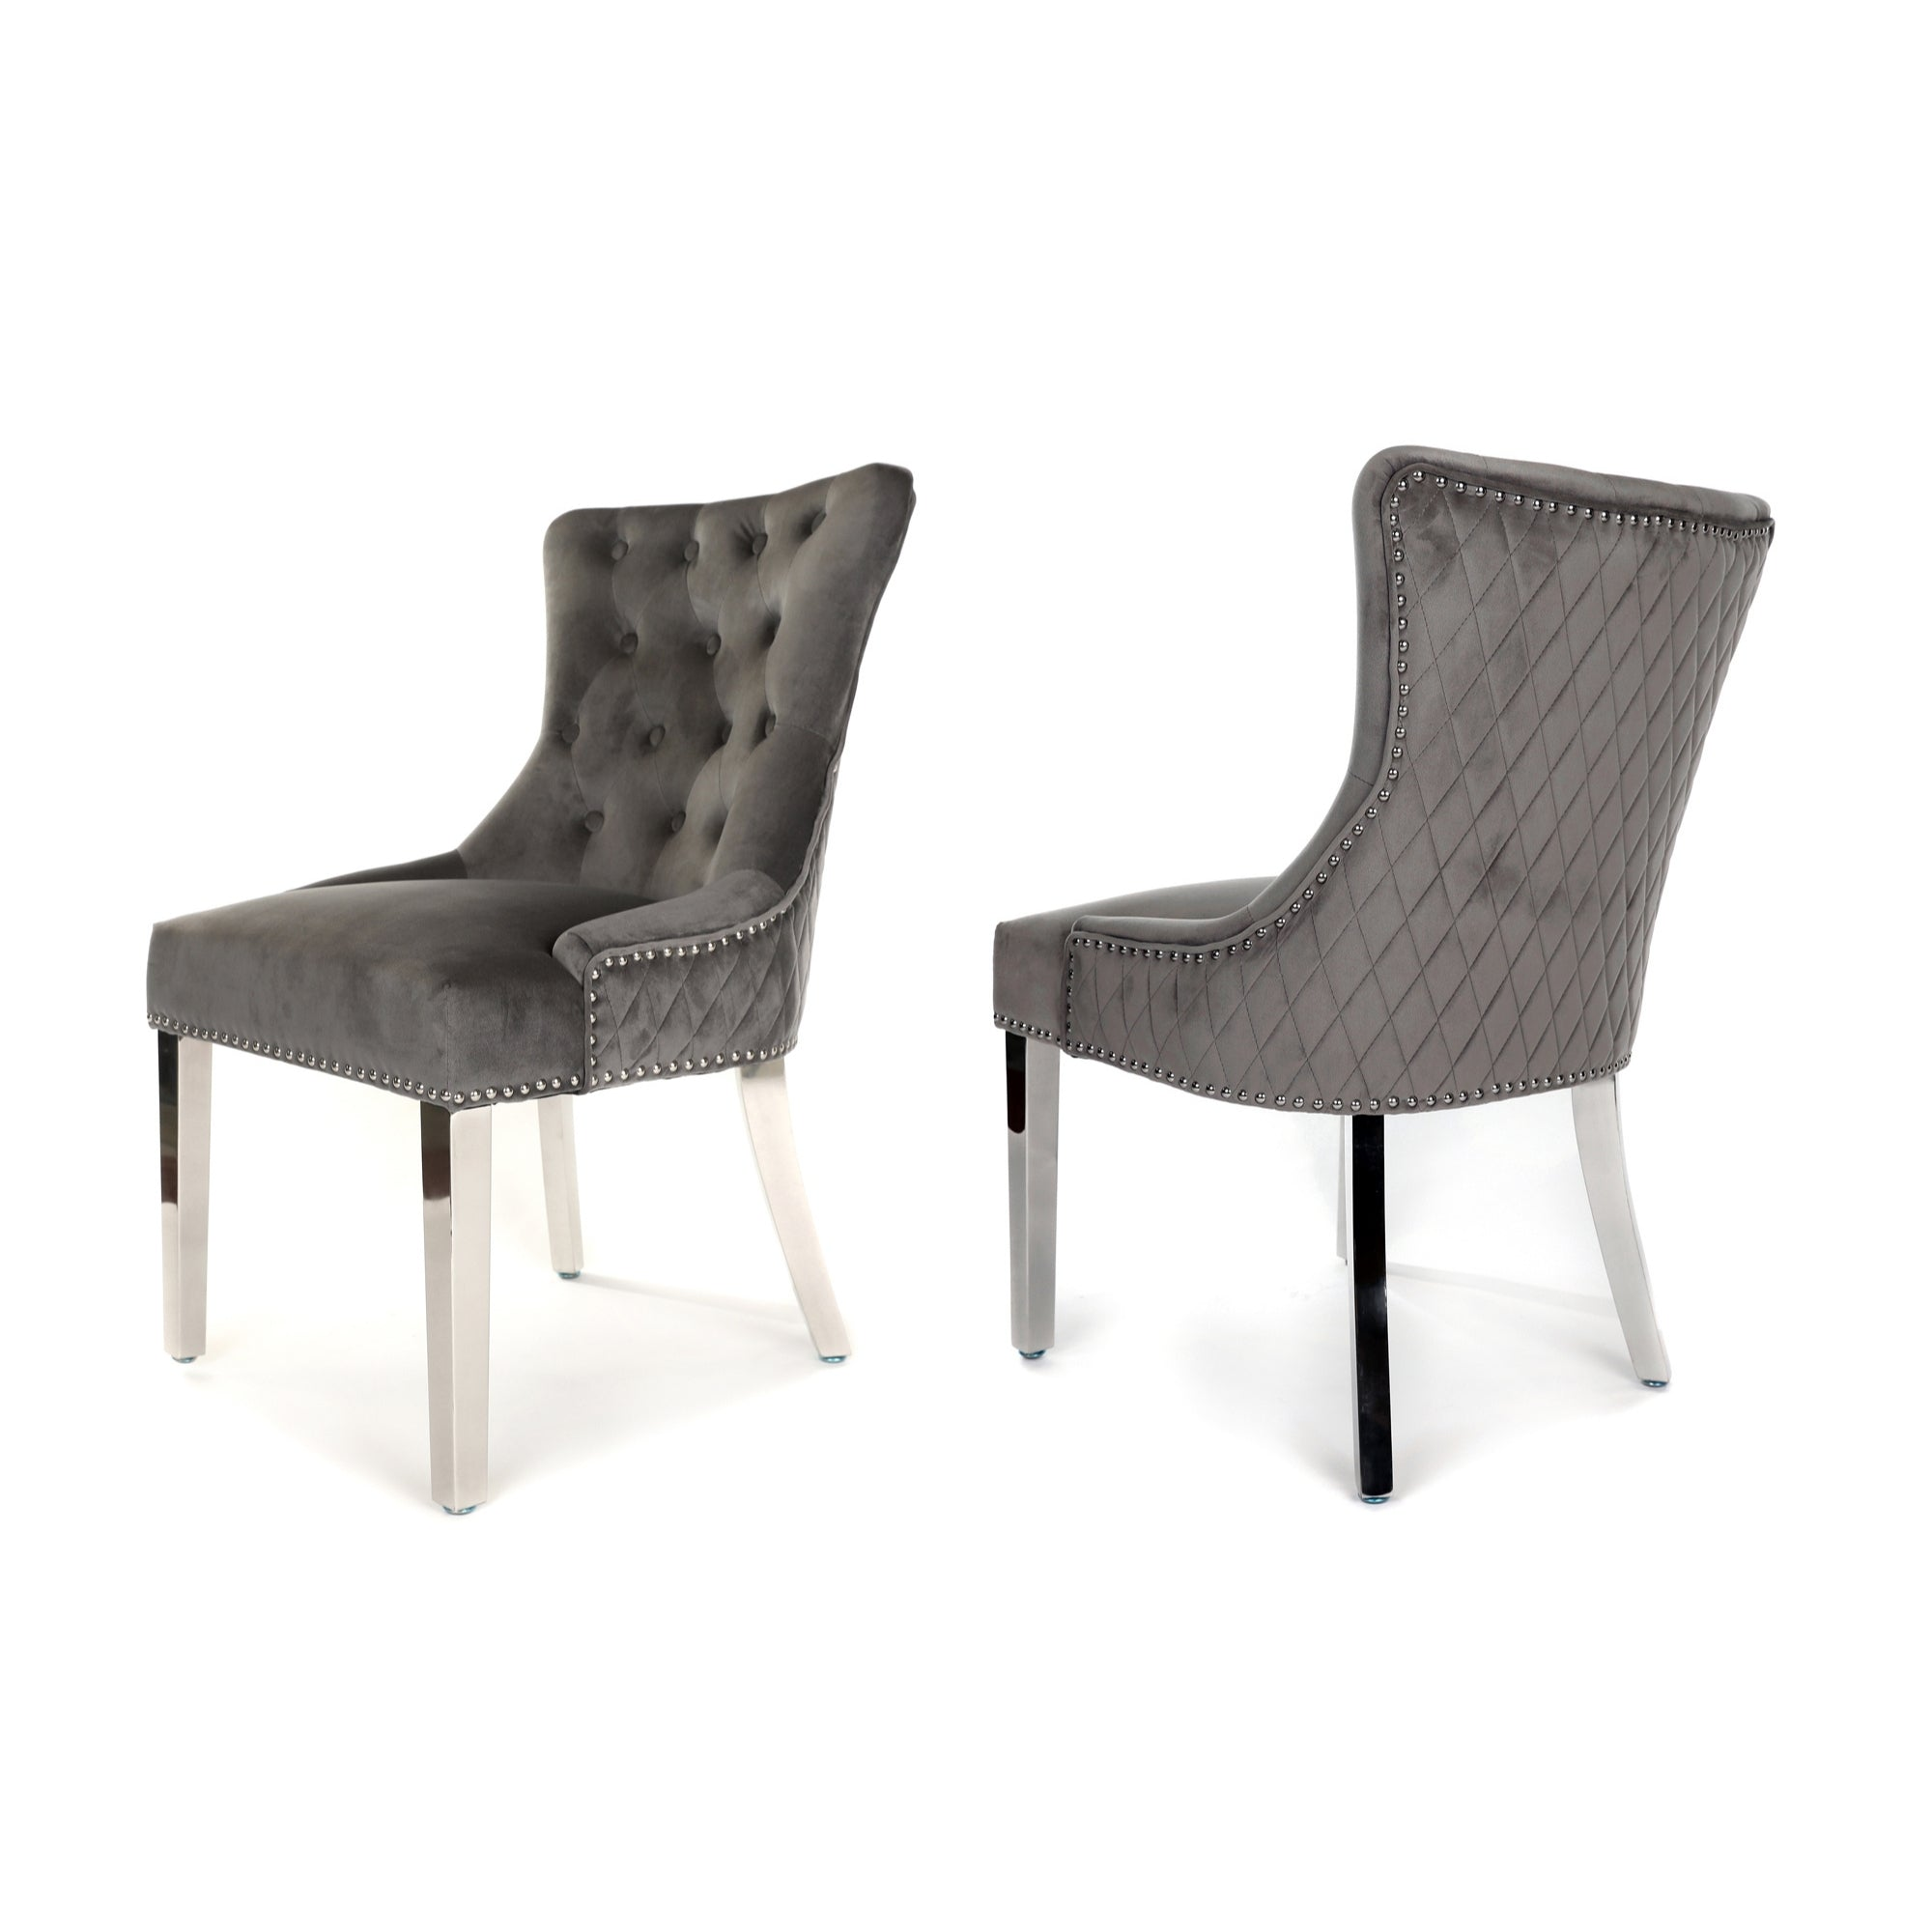 Simone Dining Chair upholstered in dark grey velvet with stud detail, quilted-back and metal legs